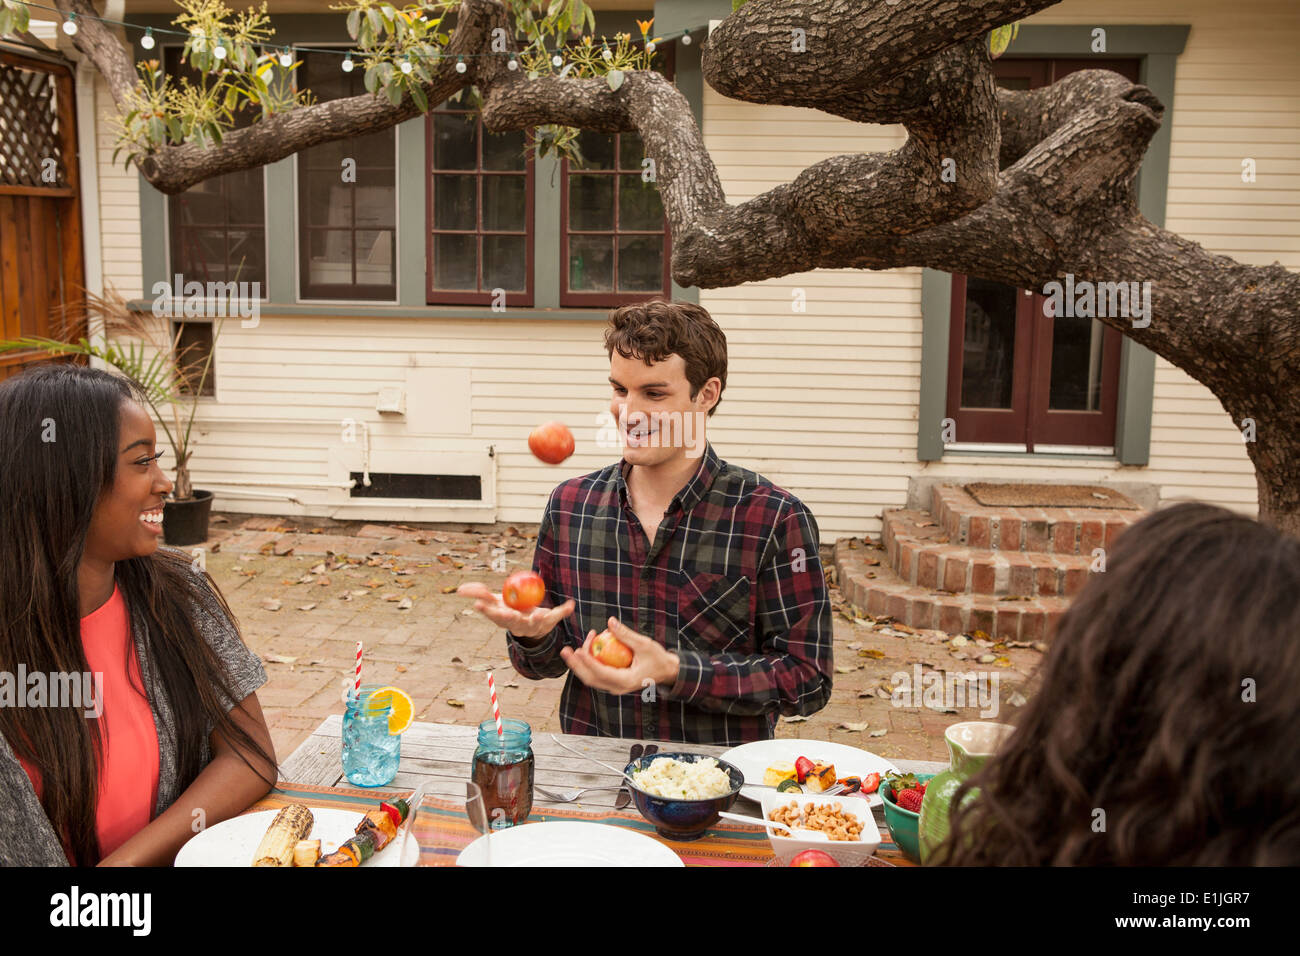 Friends sitting around table sharing barbecue food, man juggling fruit - Stock Image